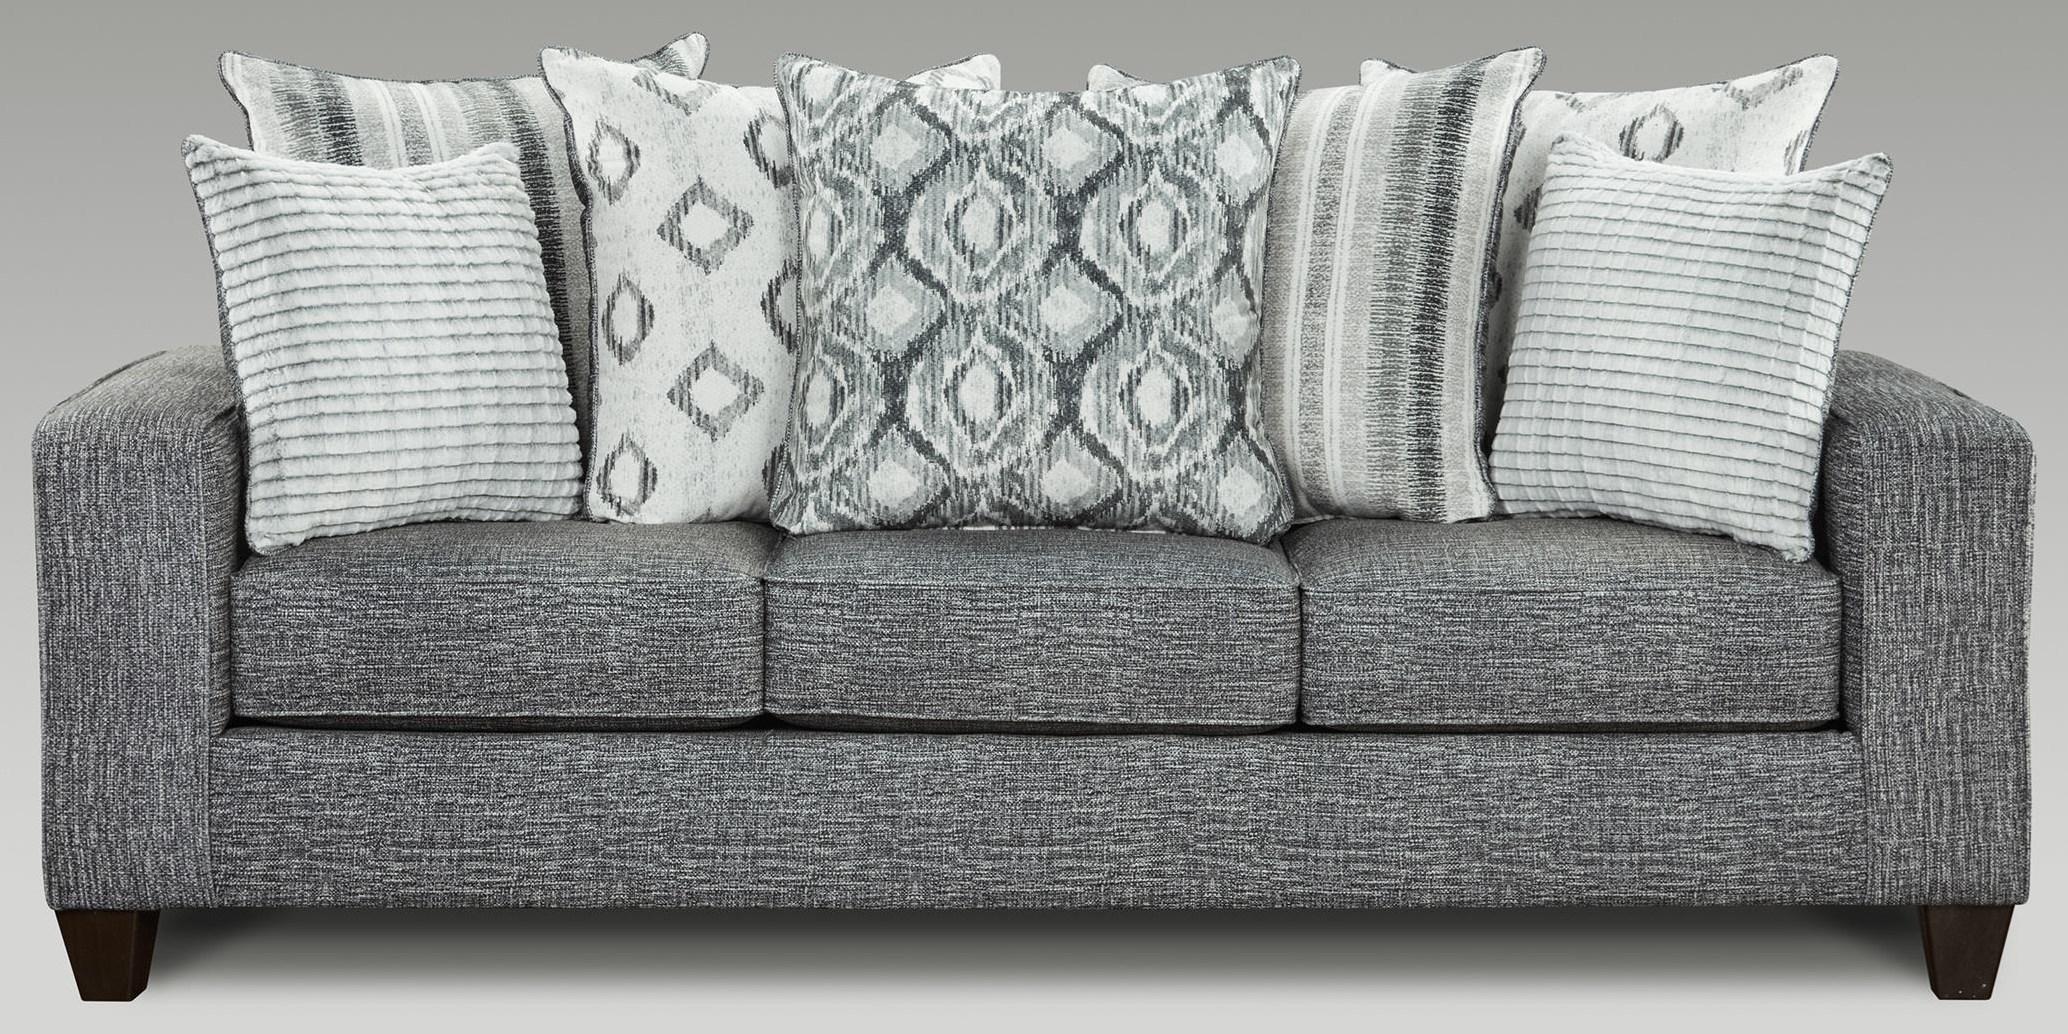 5850 Sectional Contemporary Sofa by Affordable Furniture at Furniture Fair - North Carolina